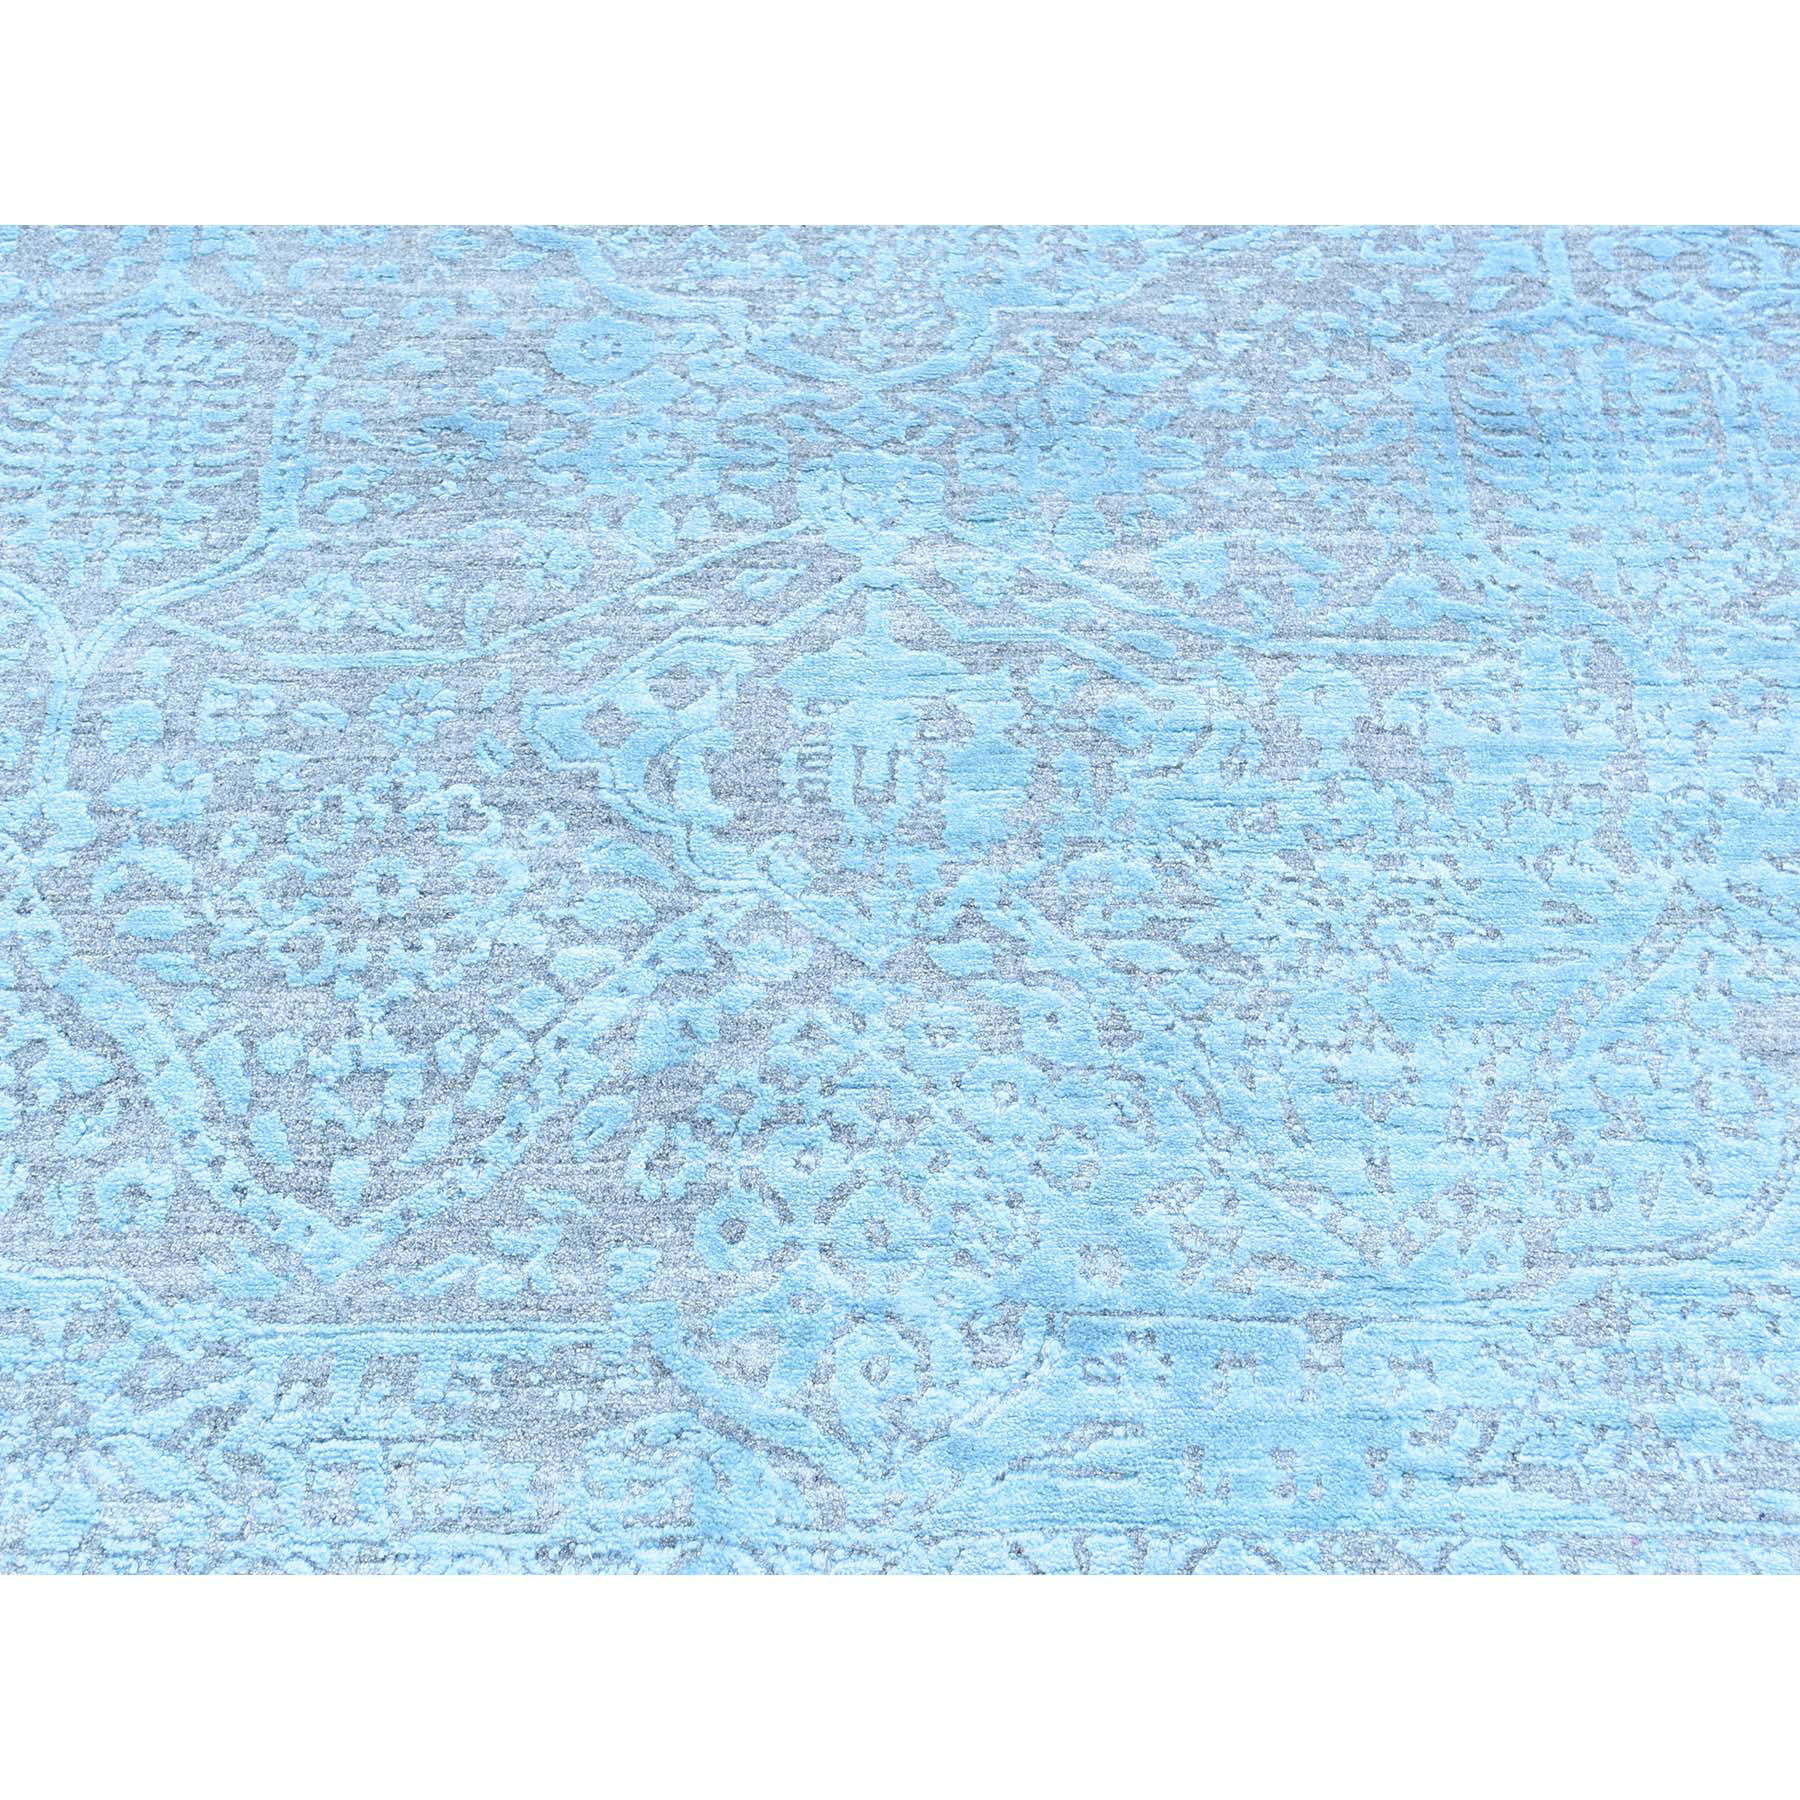 12'x12' Hand-Knotted Broken Persian Design Square Wool And Silk Rug